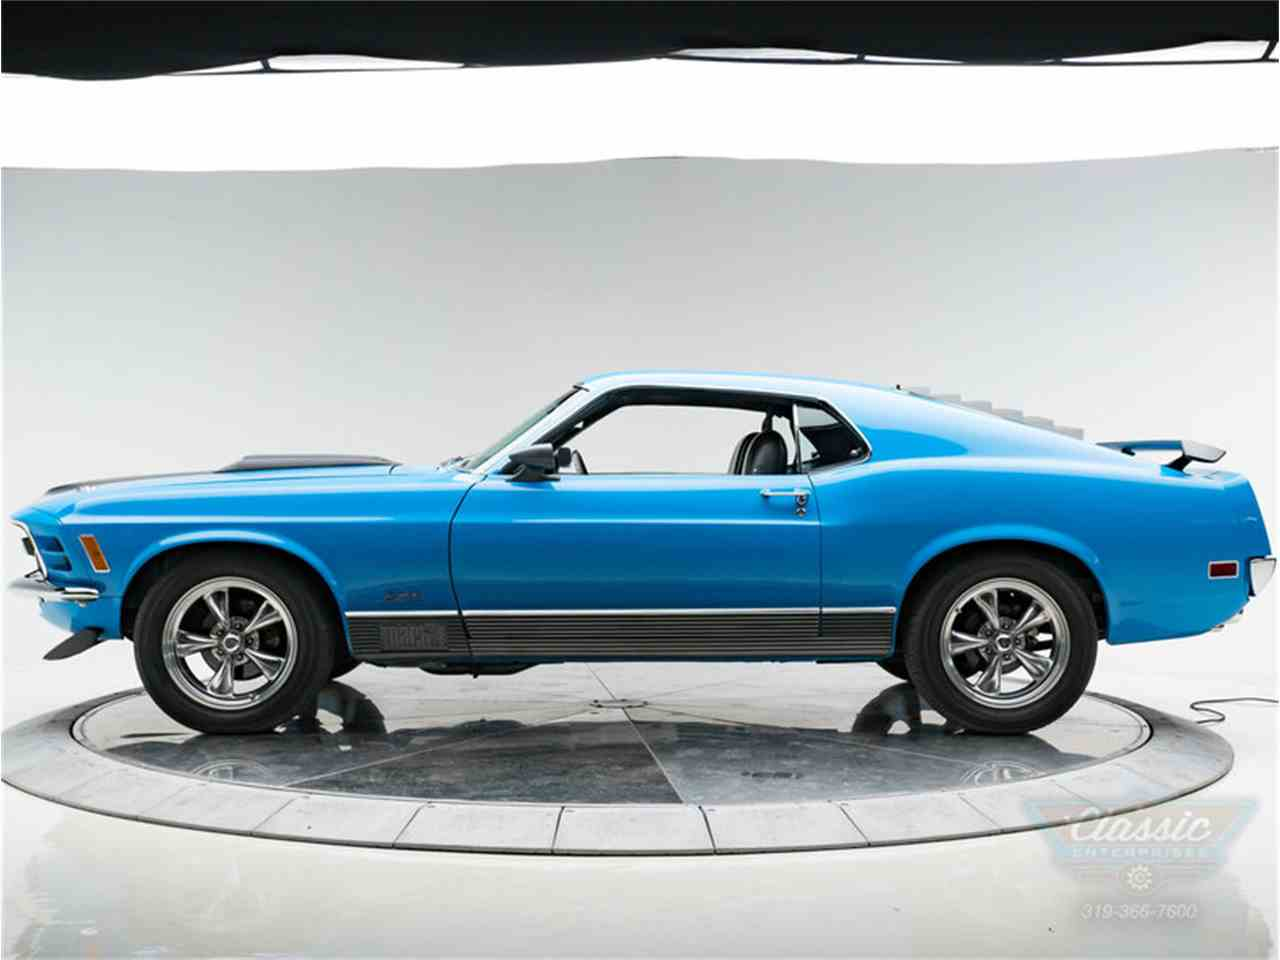 Large Picture of '70 Ford Mustang Mach 1 Offered by Classic Enterprises - LWJF